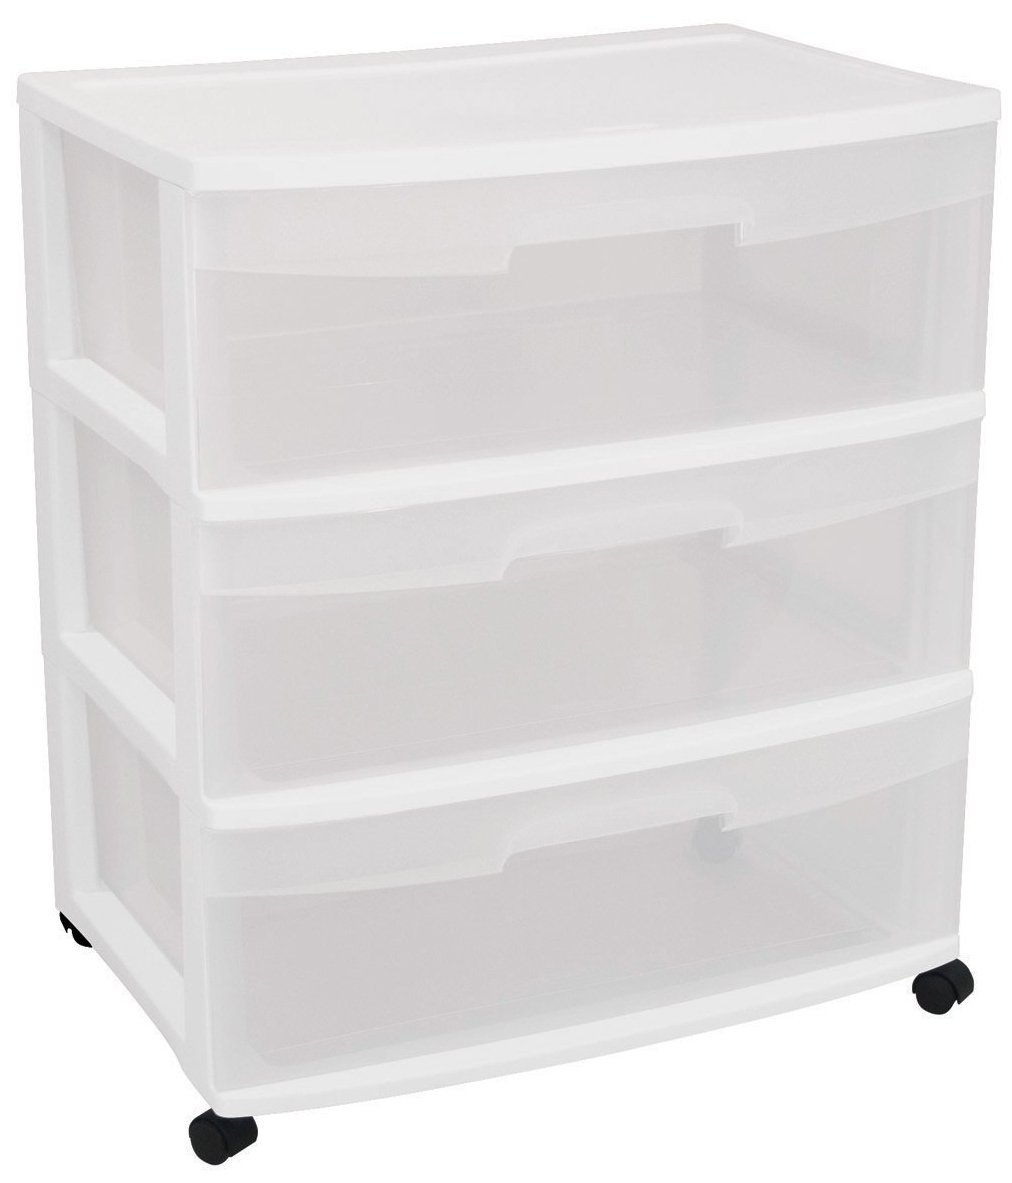 STERILITE 29308001 Wide 3 Drawer Cart White Frame with Clear Drawers and Black Casters